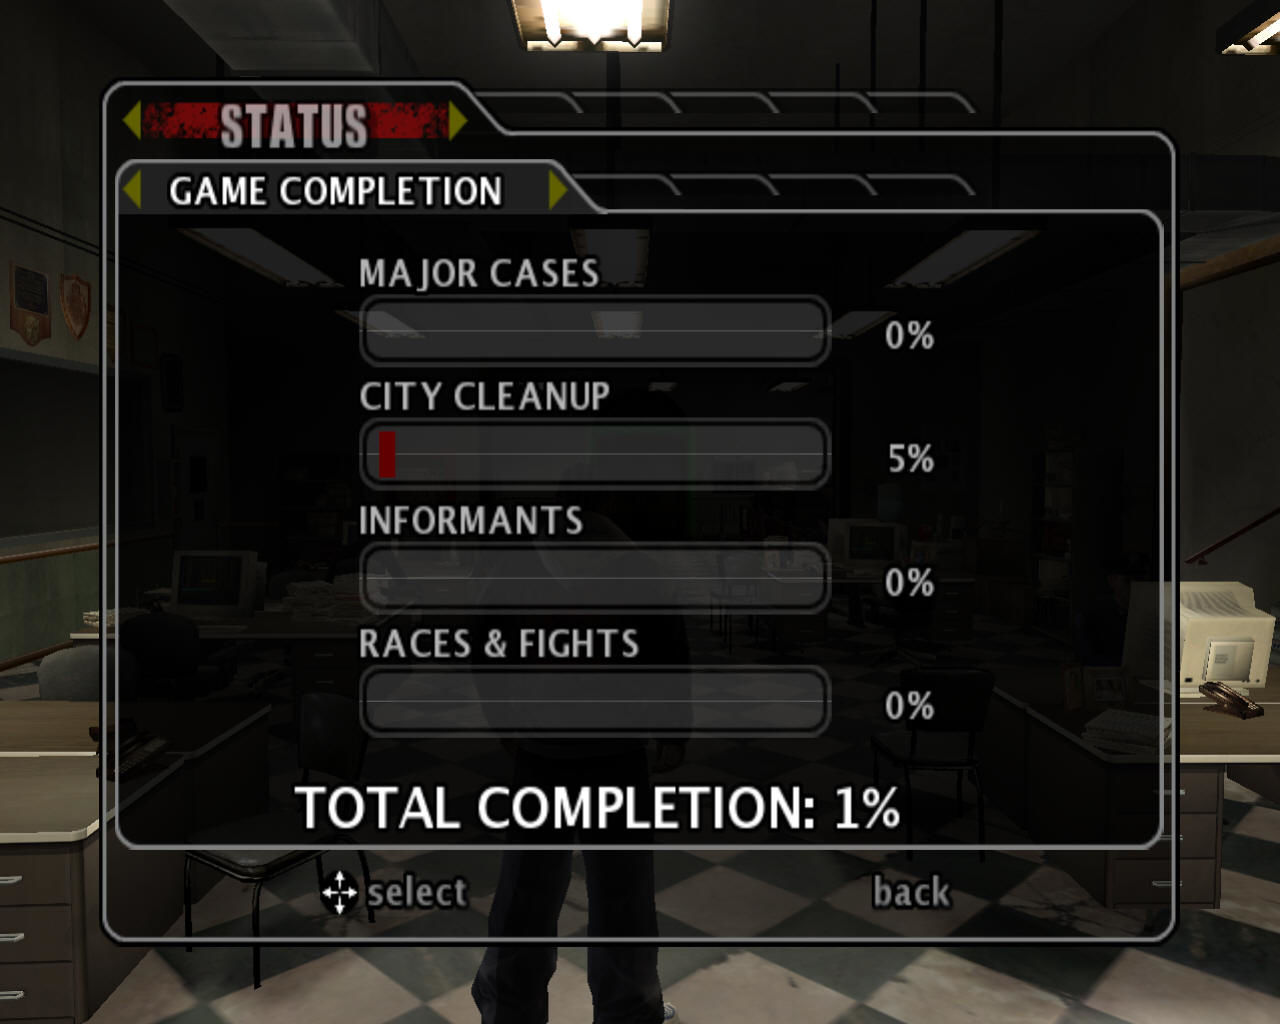 True crime new york city windows status of game completion